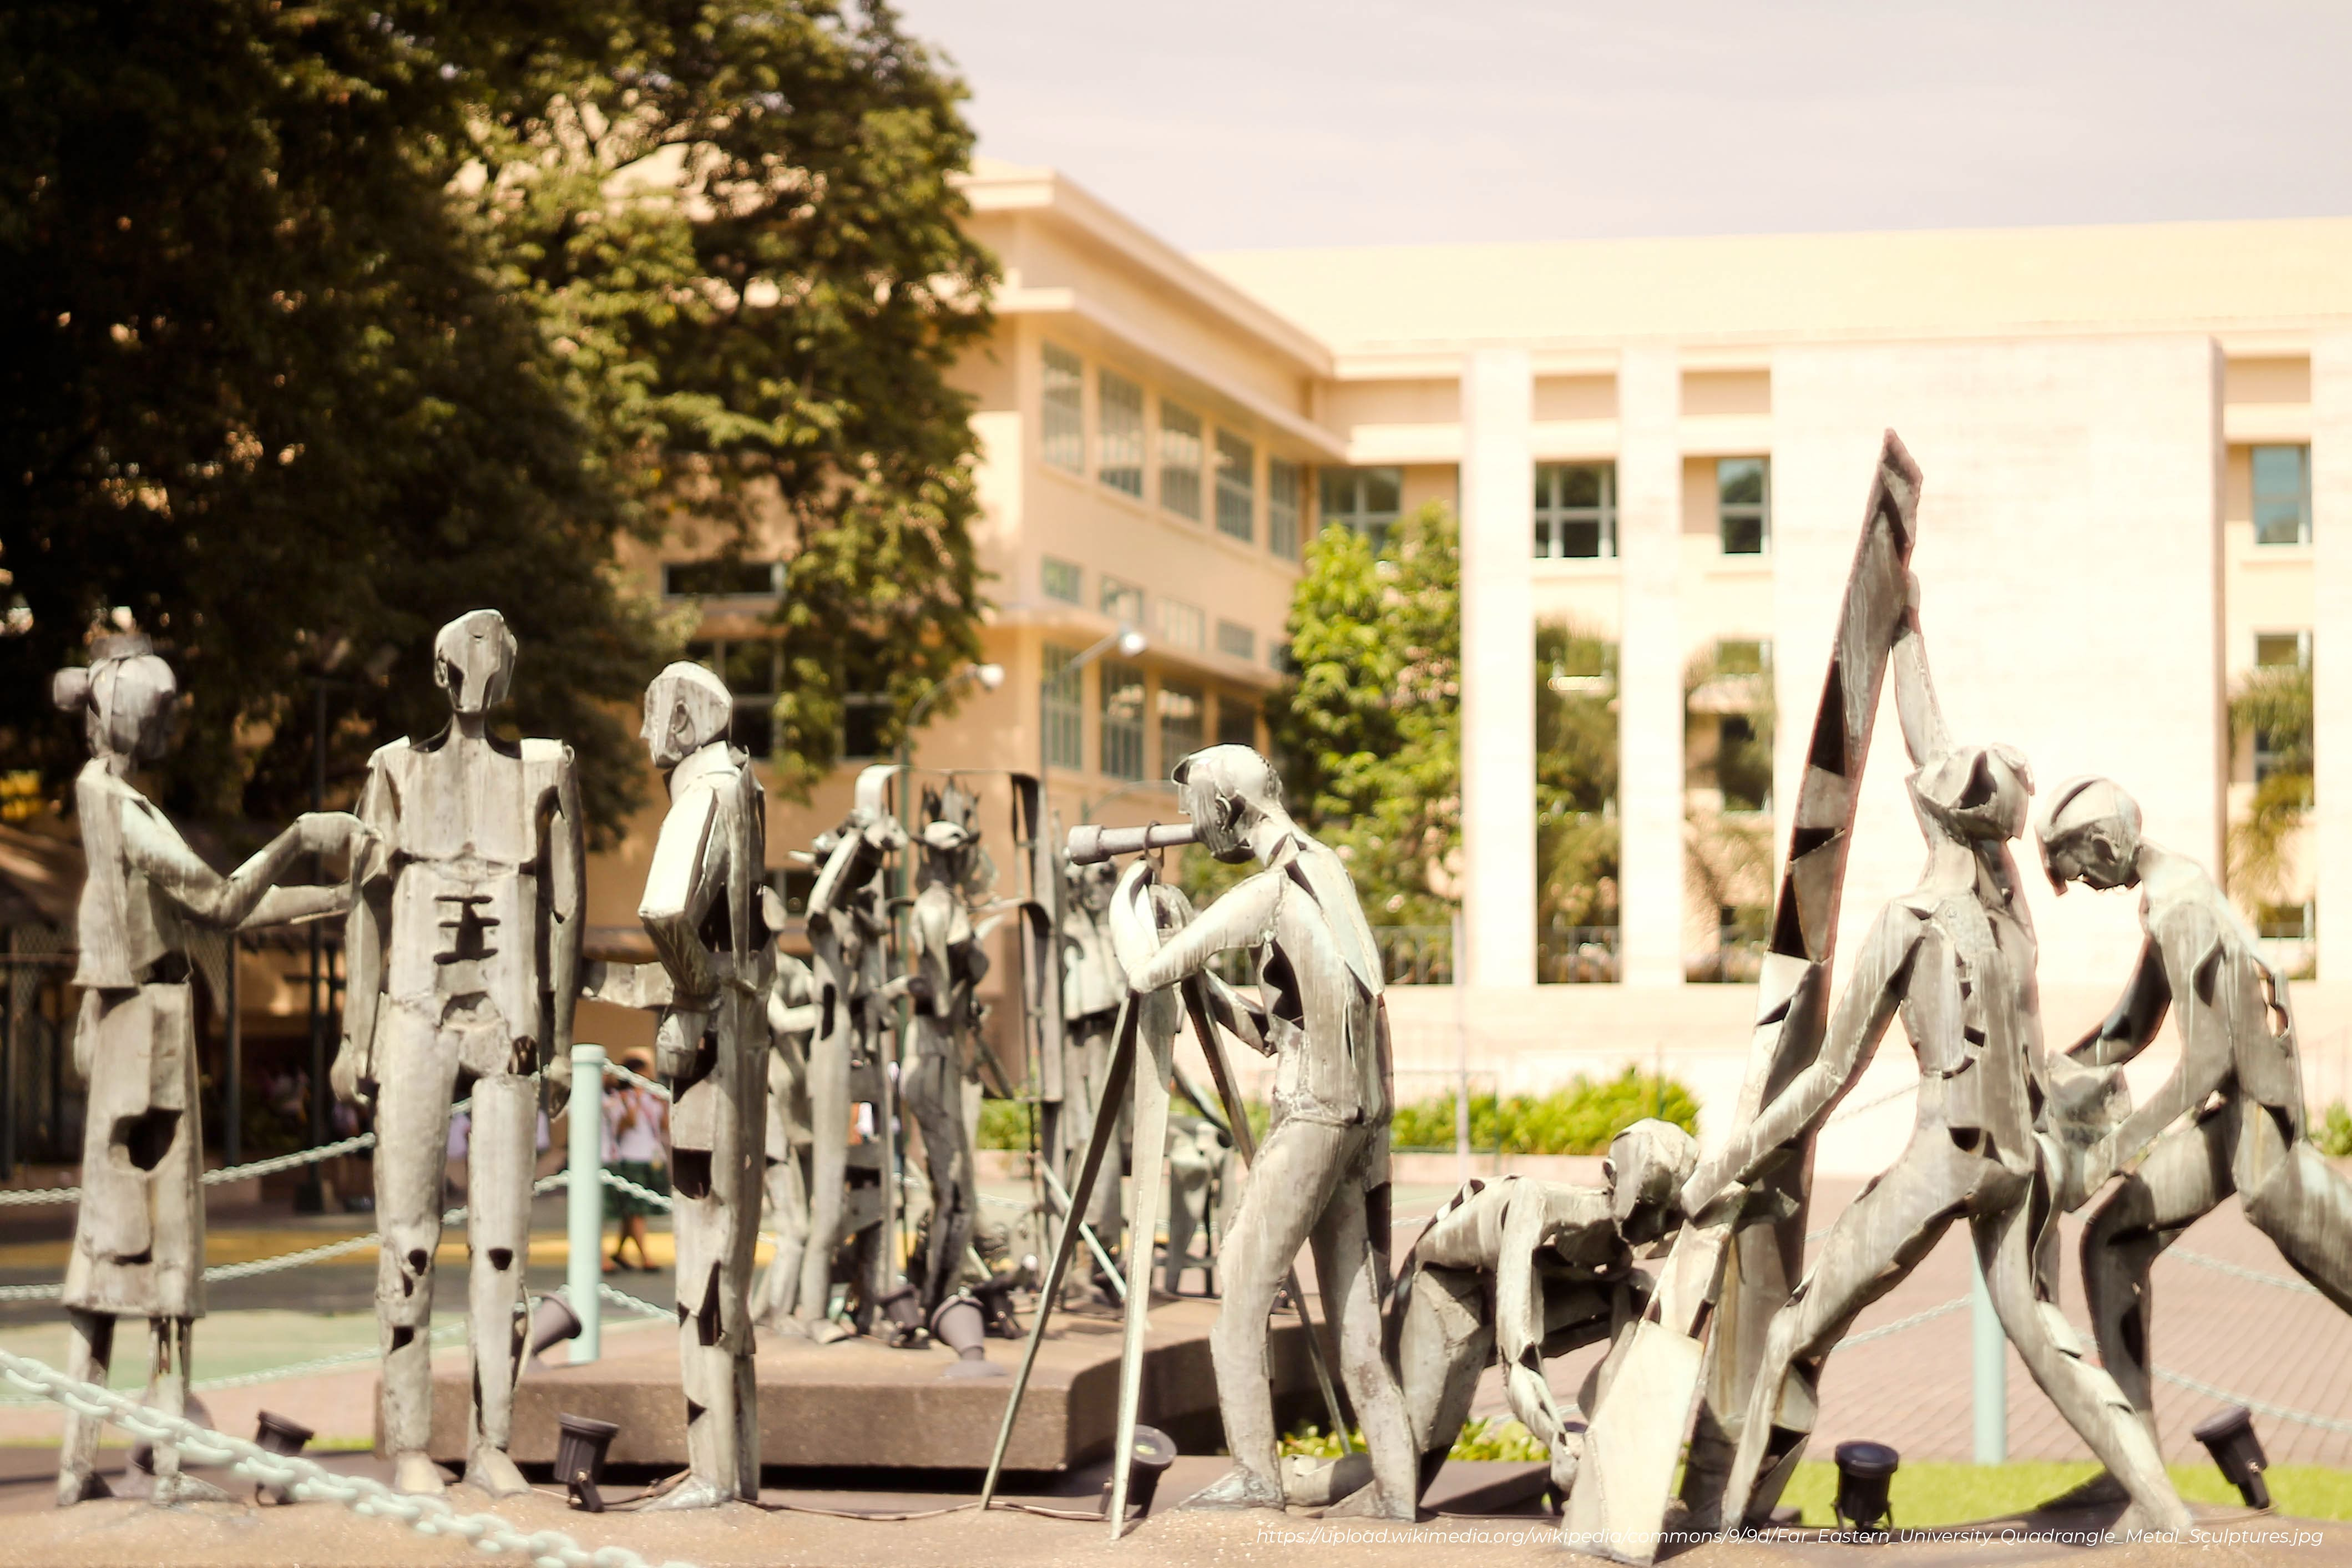 far eastern university (feu) memorial quadrangle